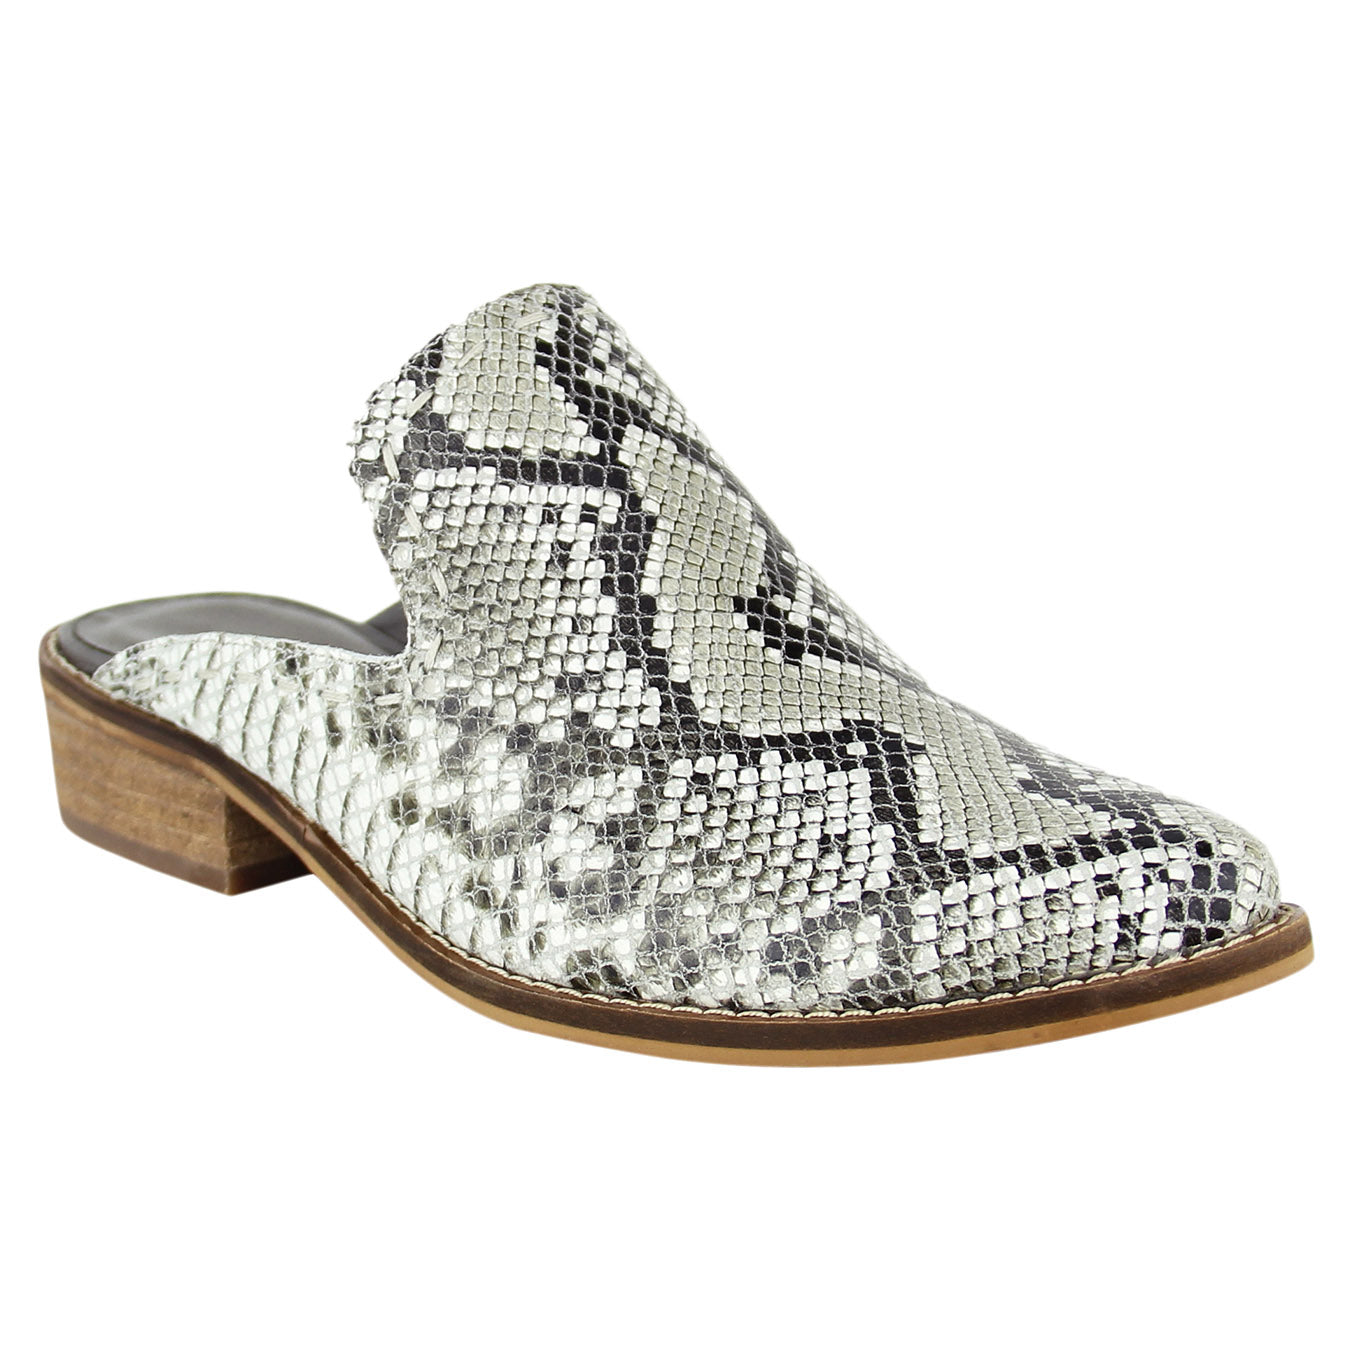 naughty_monkey_flat_mule_reptile_print_leather_women_fashion_grey